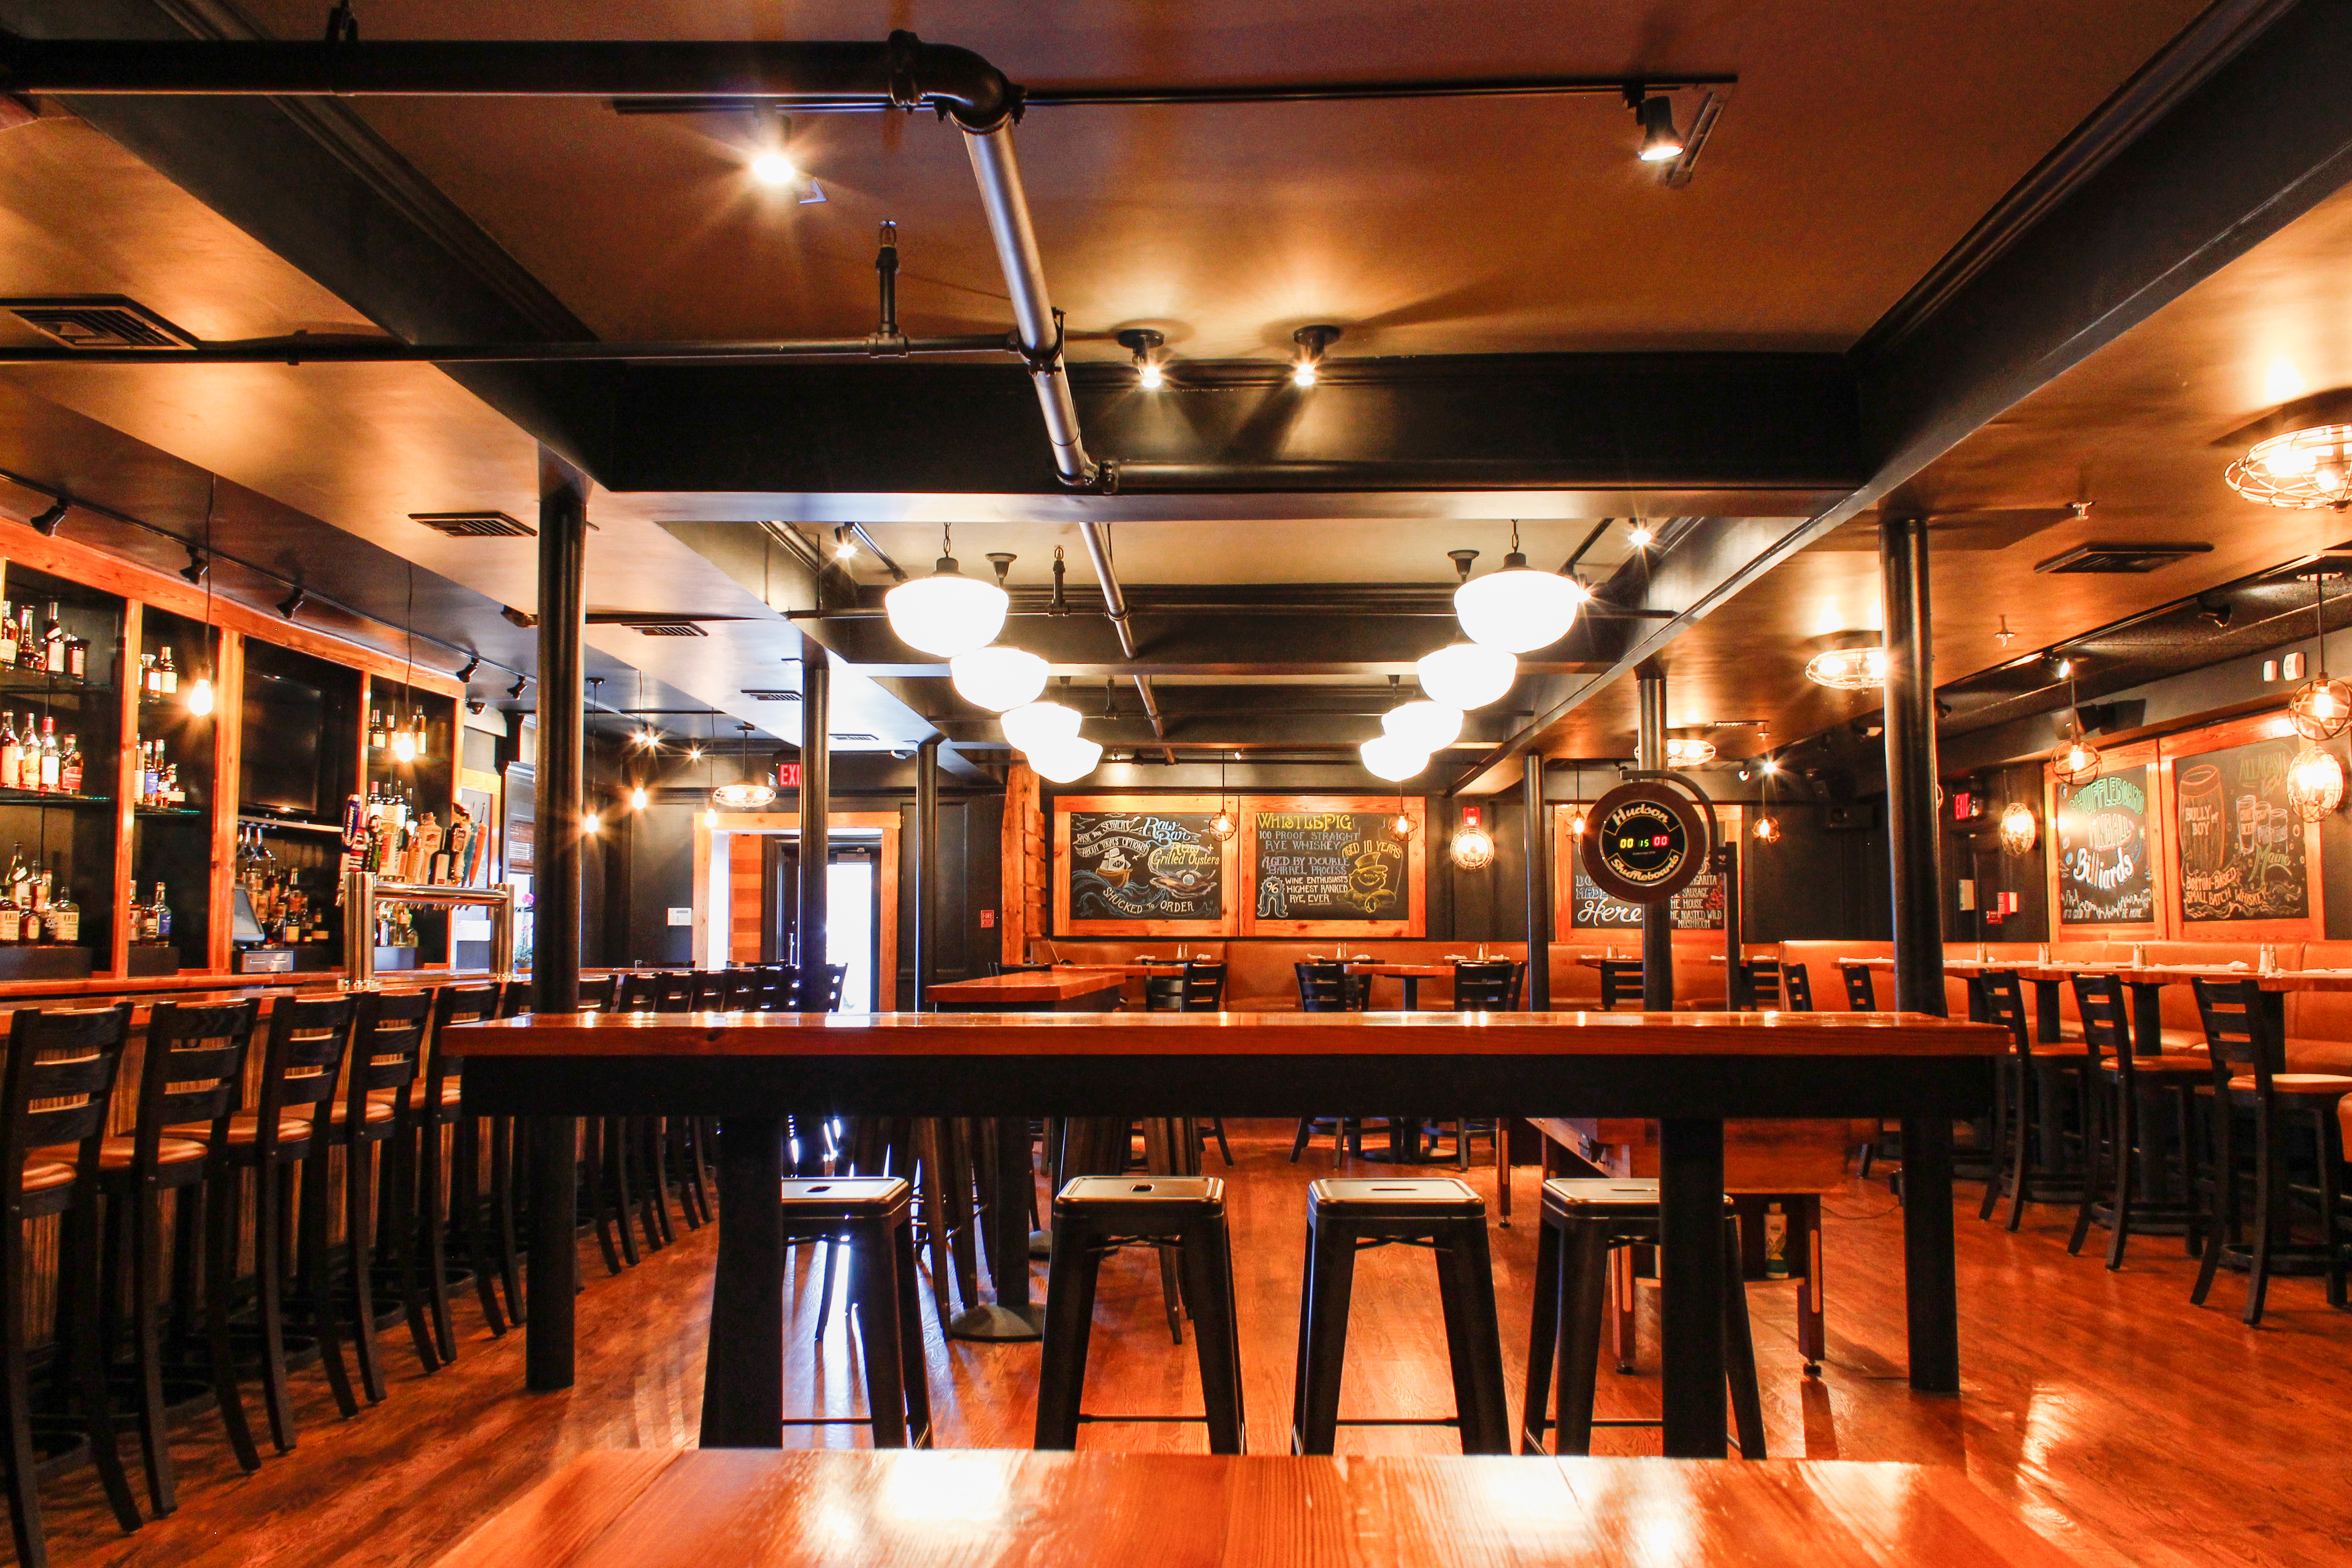 The Hopewell Bar and Kitchen